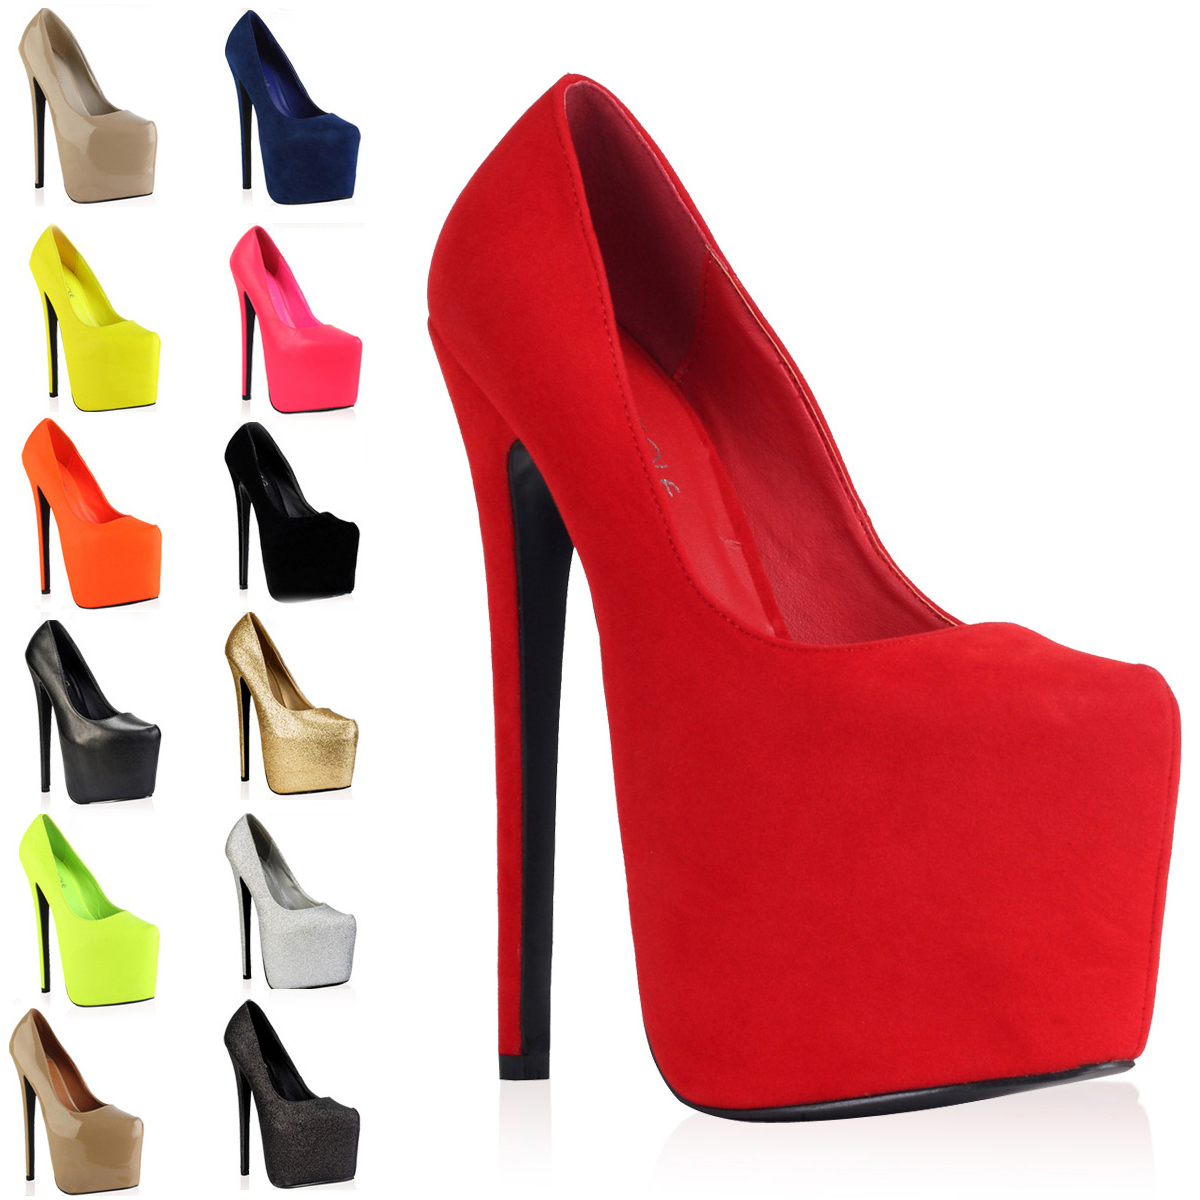 New Ladies Pointy Womens Platform High Heel 7 Inch Stiletto Court